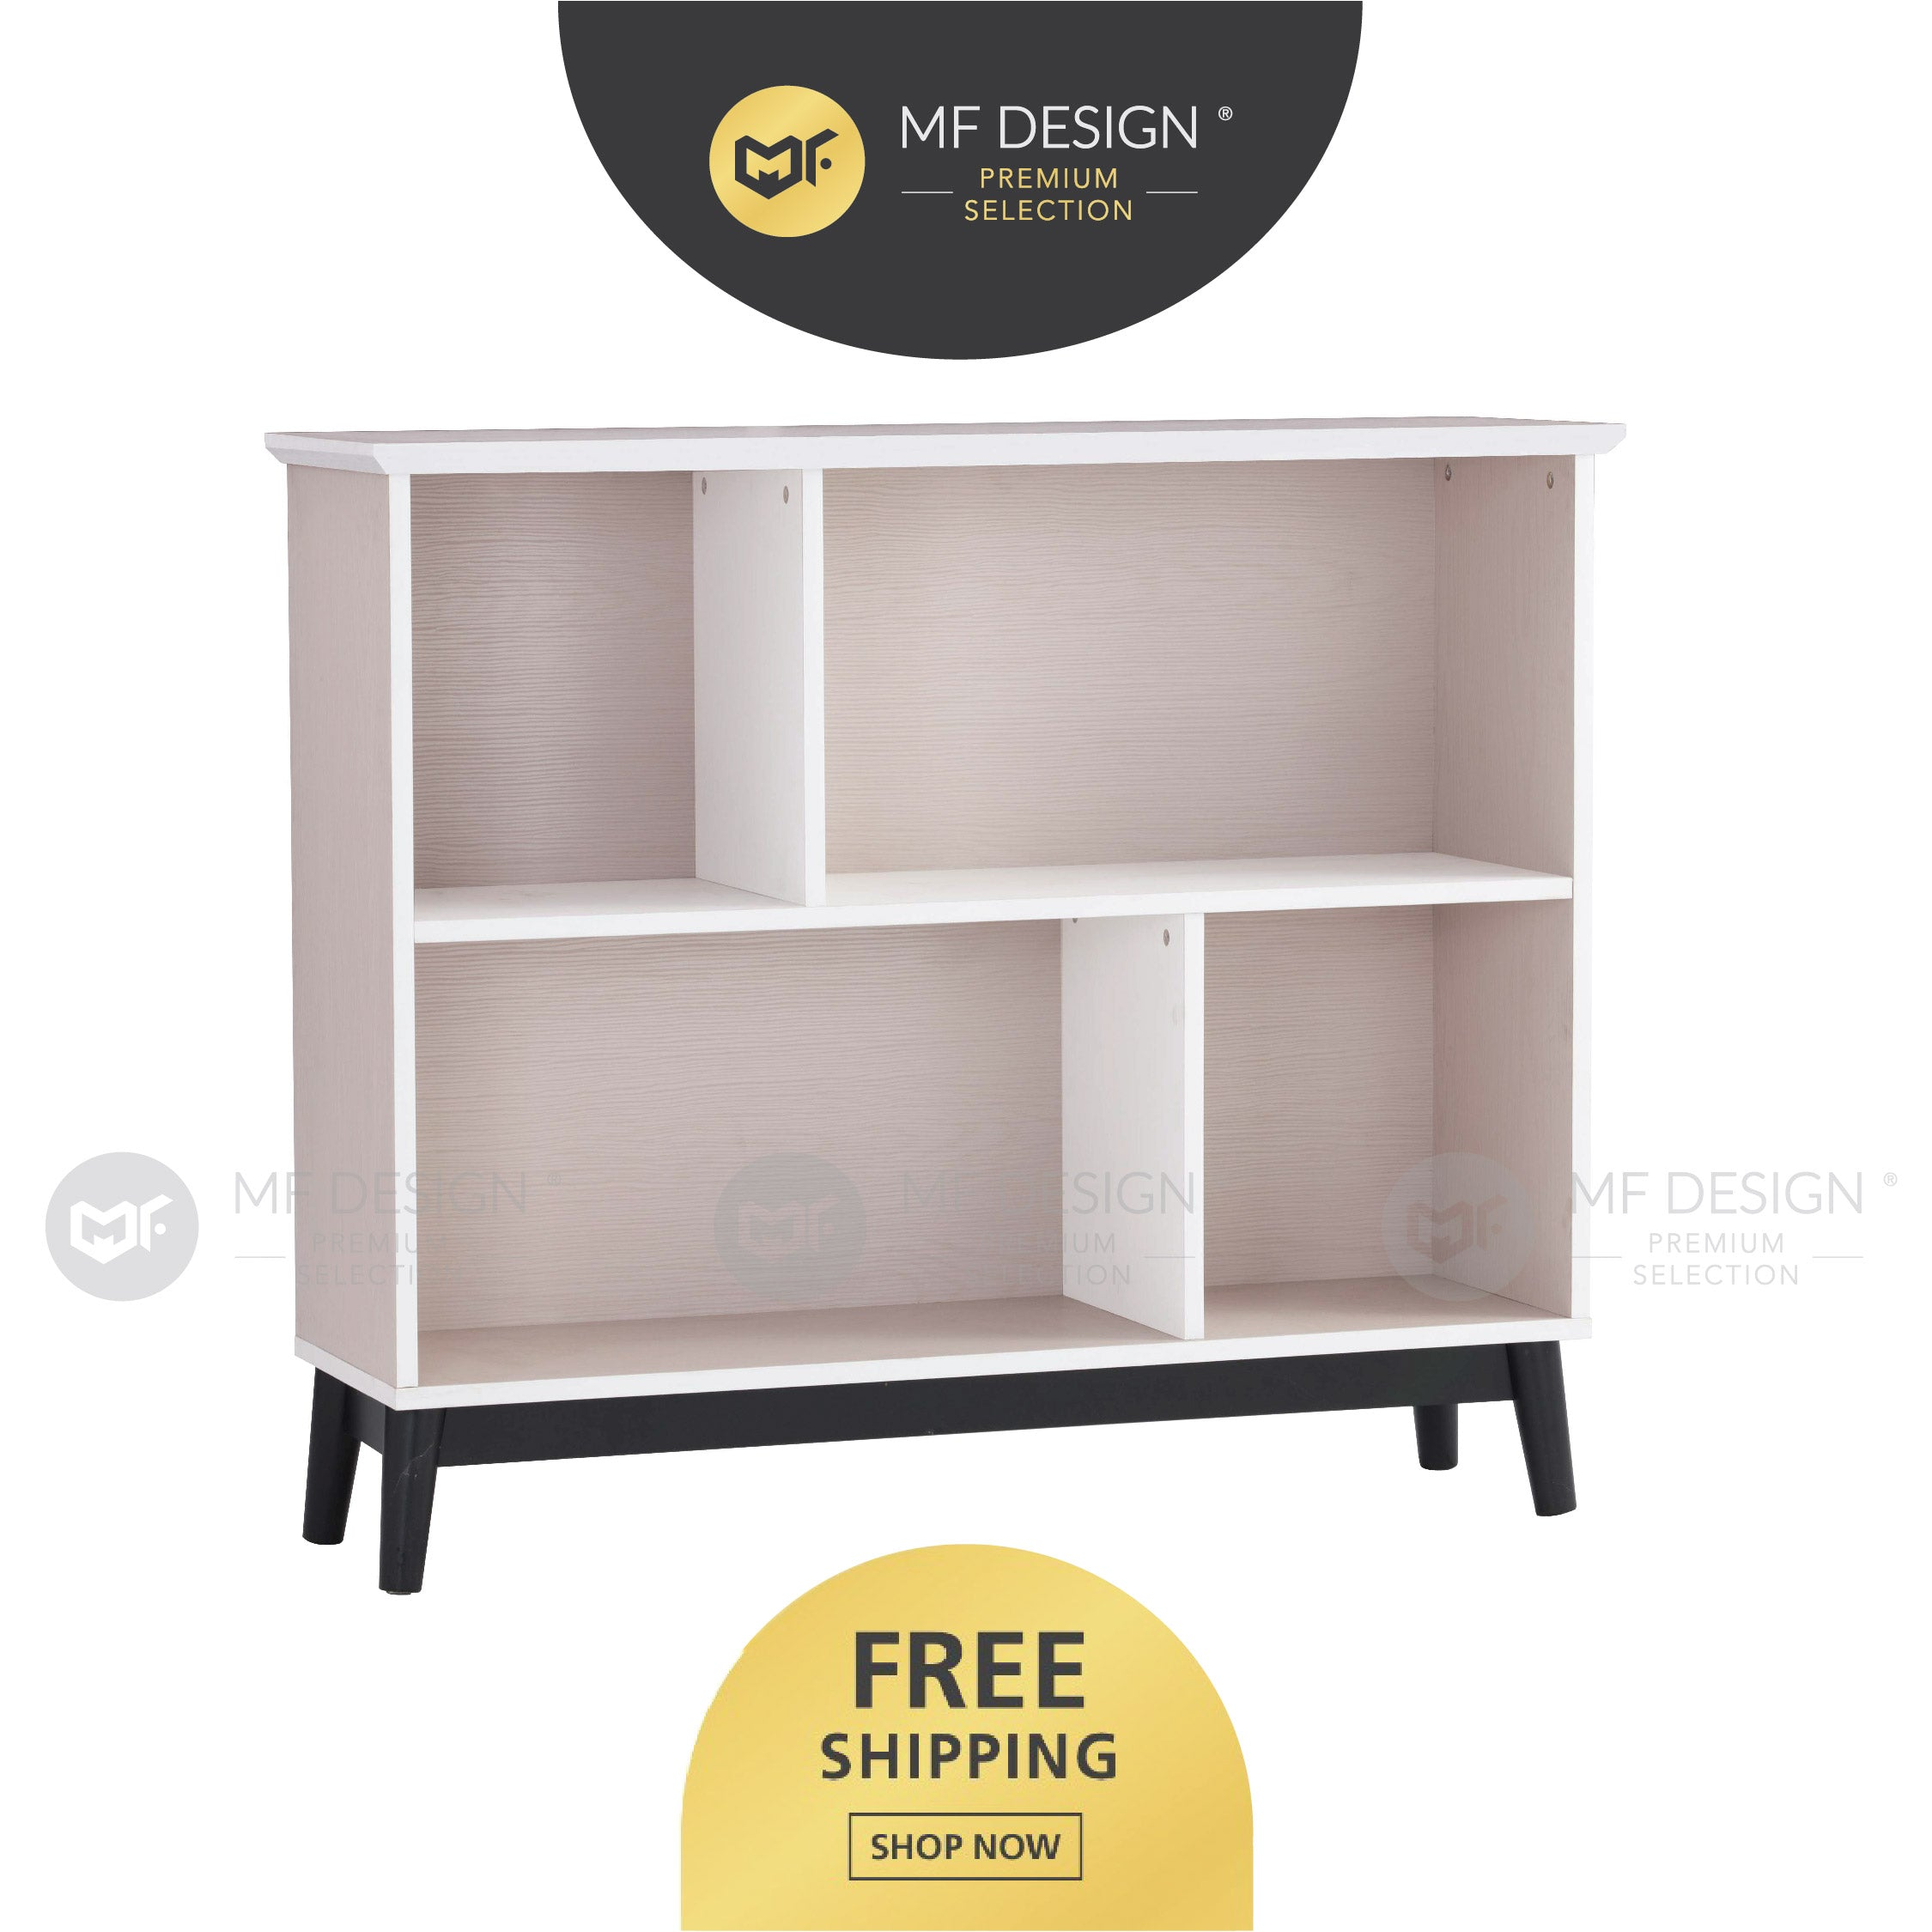 MFD Premium Haze Bookcase Rak Buku Shelf Display Rack Storage Rack Rak Dapur Filling Cabinet Almari Buku